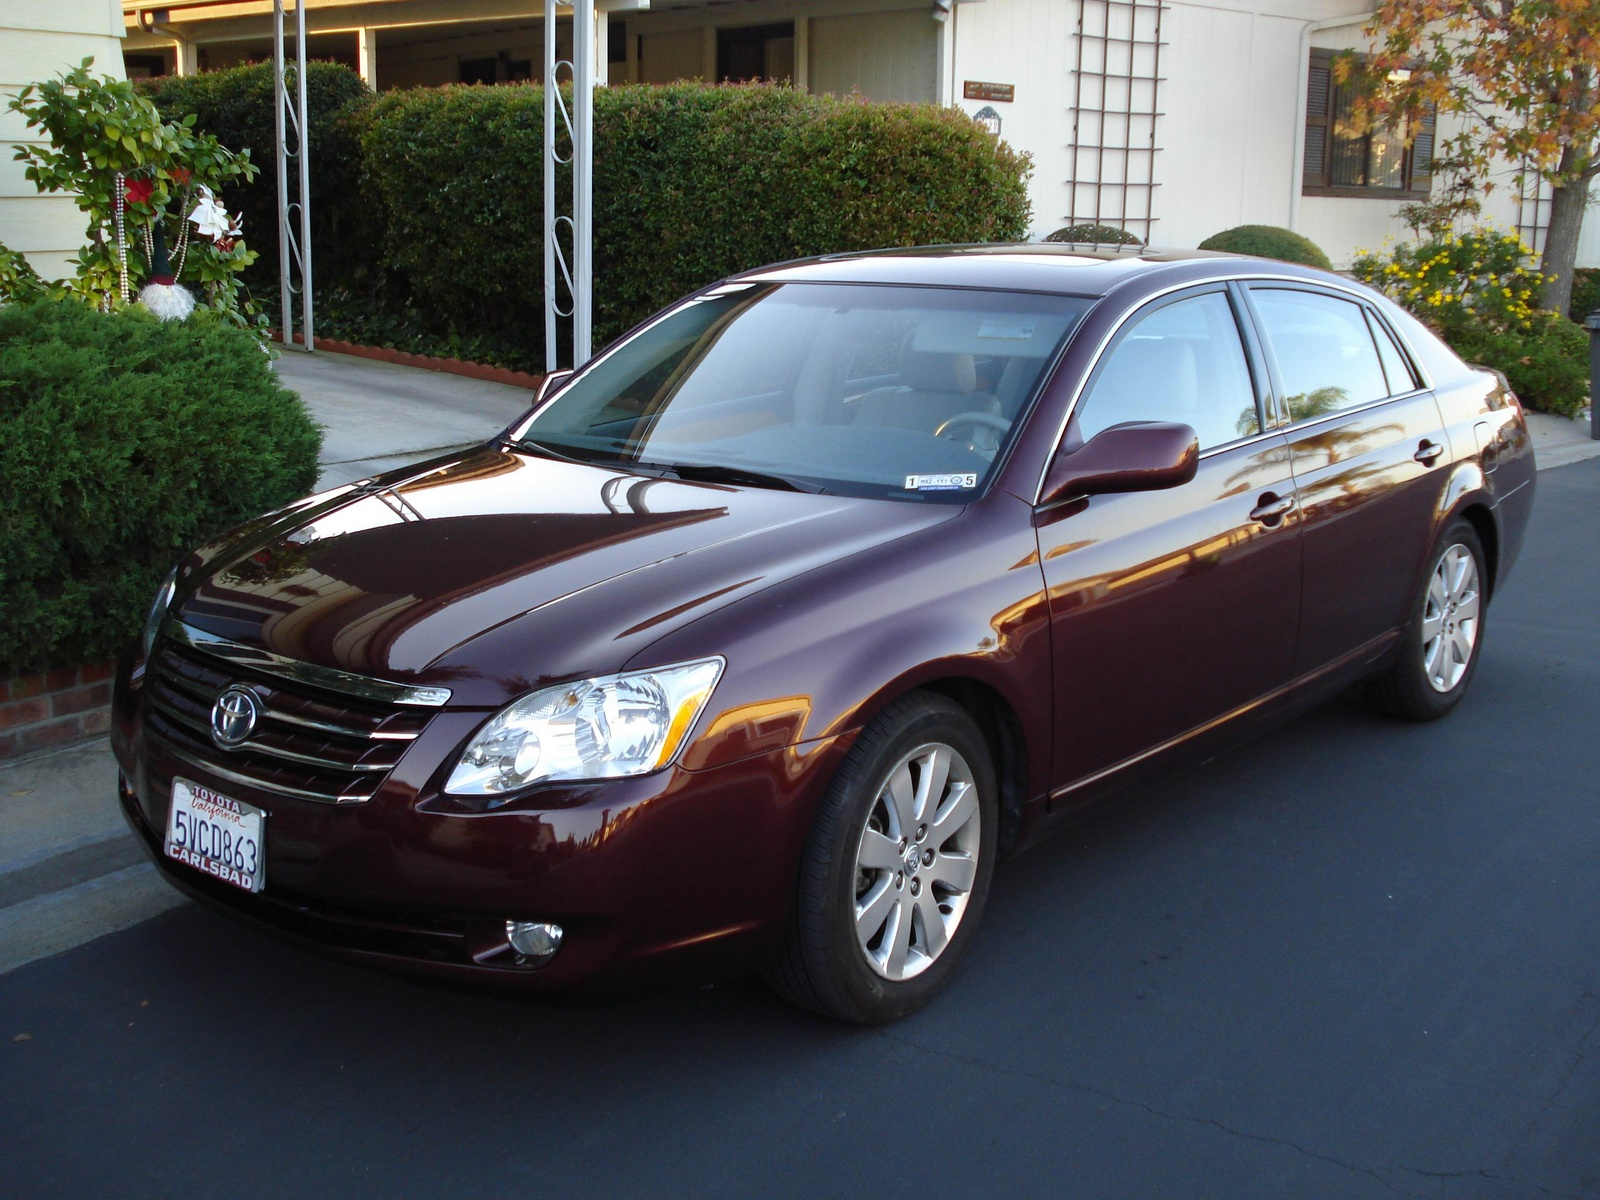 2006 toyota avalon reviews autos post. Black Bedroom Furniture Sets. Home Design Ideas